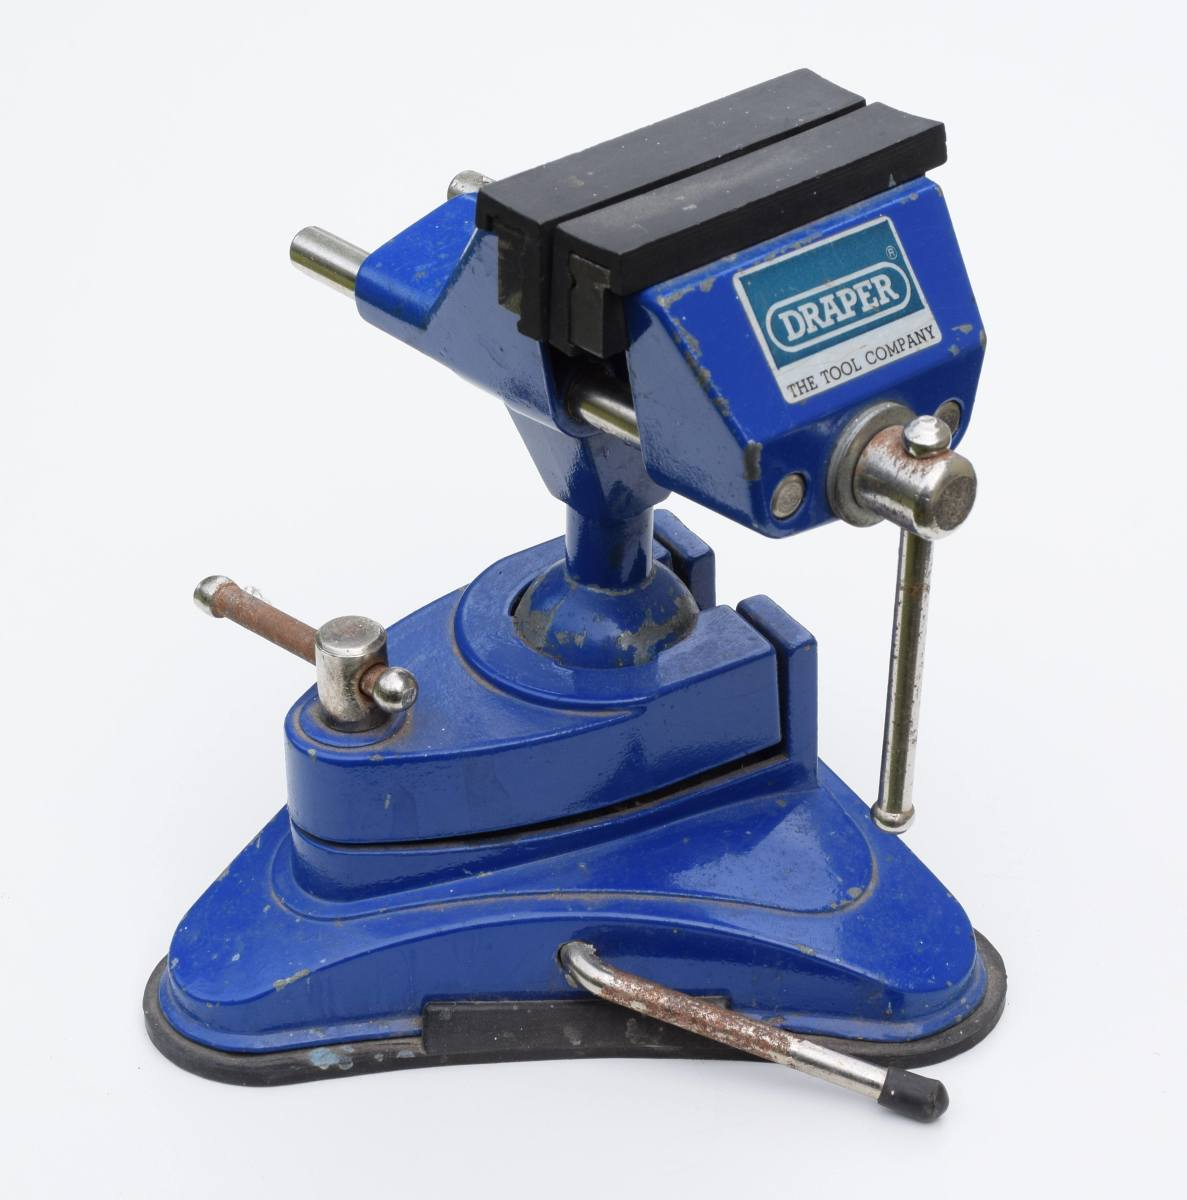 A small vice like this one is useful for holding components such as connectors when soldering. This vice has a suction base to hold it securely onto a smooth surface like a countertop.